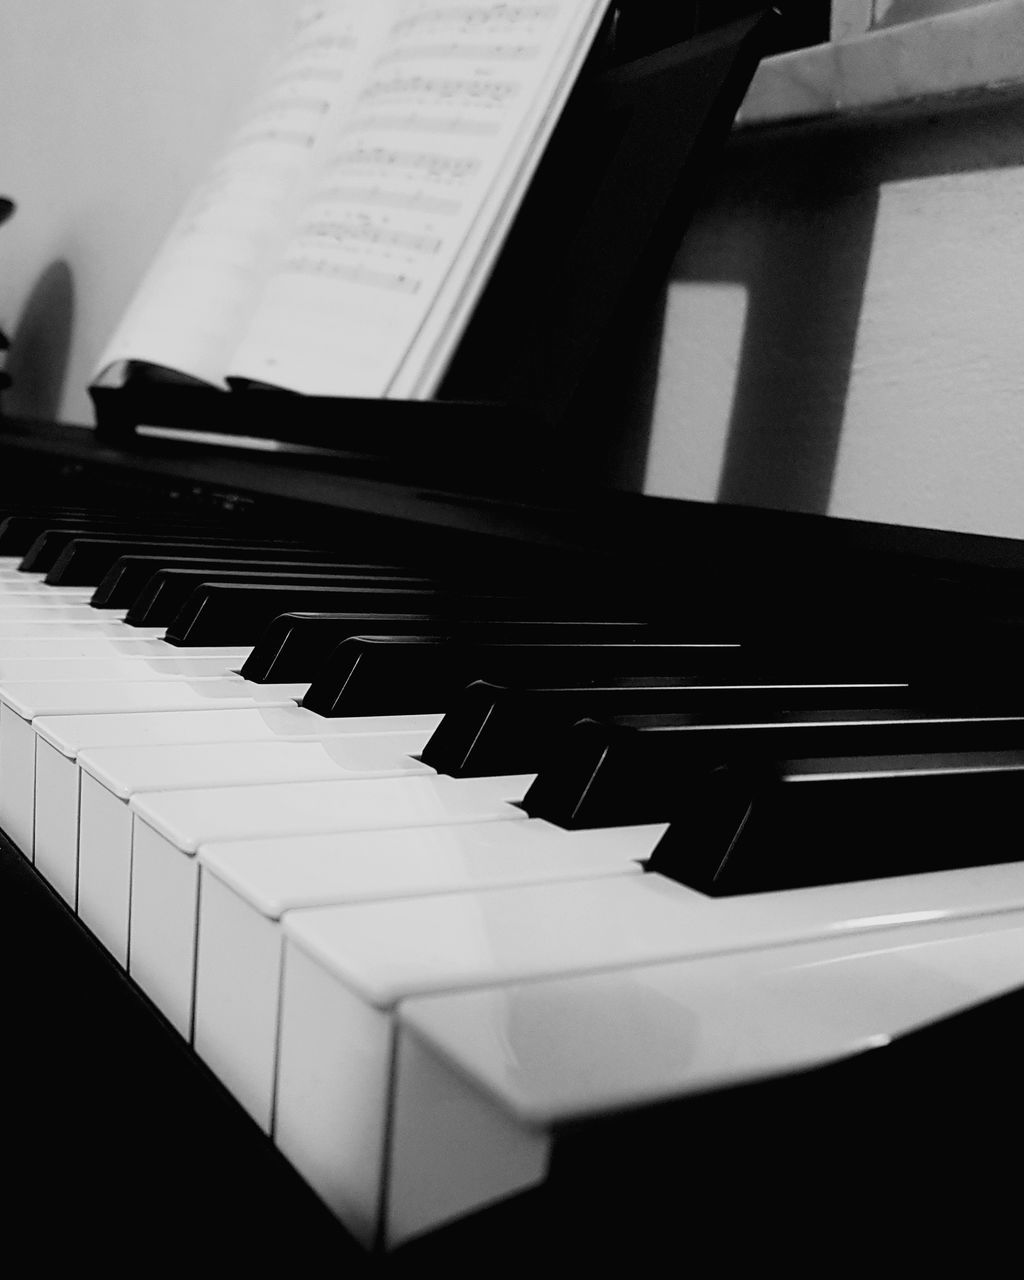 musical instrument, music, piano, piano key, keyboard instrument, arts culture and entertainment, musical equipment, close-up, indoors, classical music, no people, accordion, playing, keyboard, day